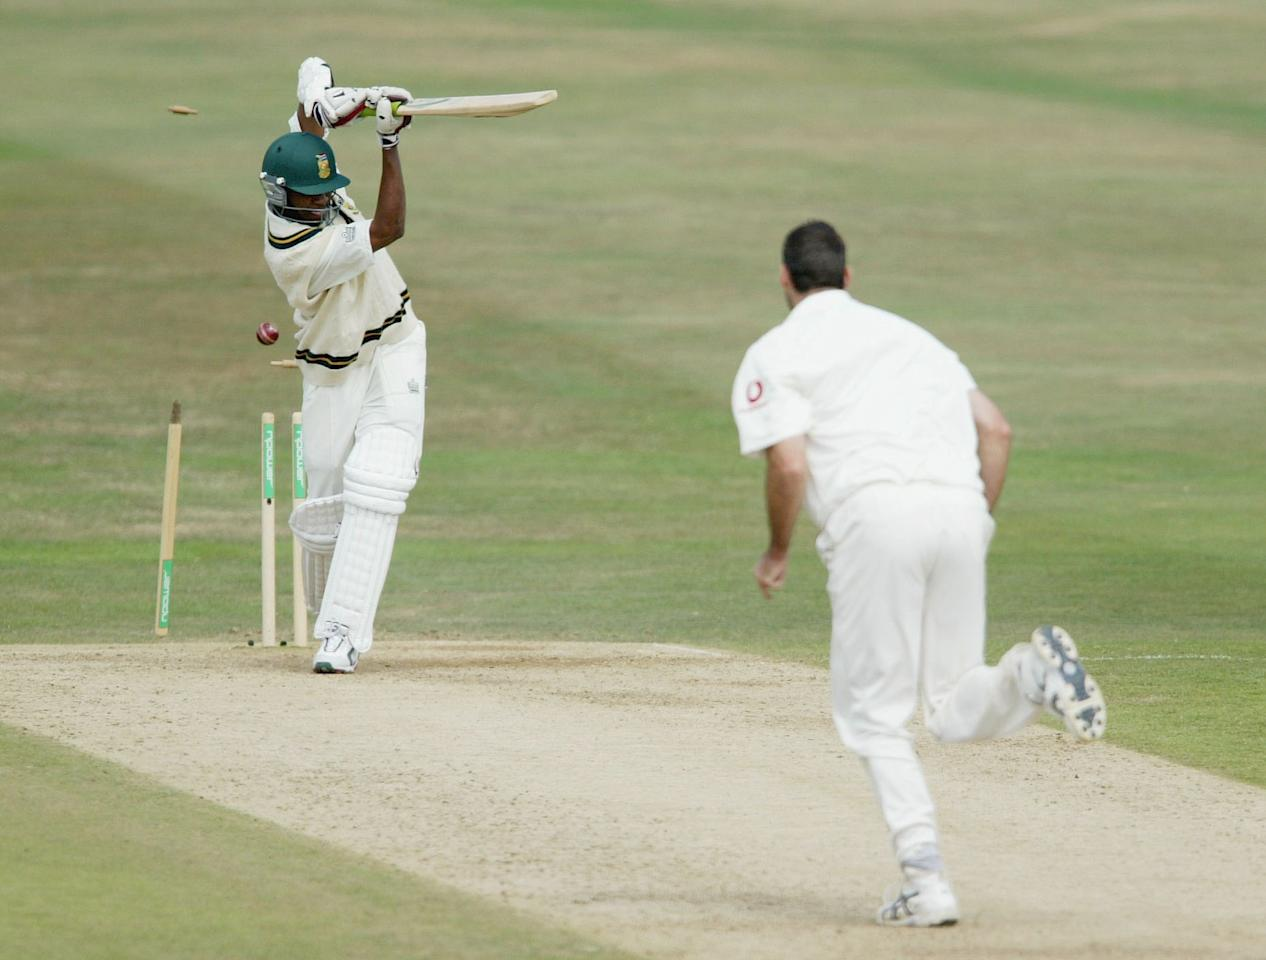 LEEDS, ENGLAND - AUGUST 24:  Martin Bicknell of England takes the wicket of Monde Zondeki of South Africa by bowling him out during the fourth day of the fourth npower test match between England and South Africa at Headingley Cricket Ground on August 24, 2003 in Leeds, England. (Photo by Laurence Griffiths/Getty Images)